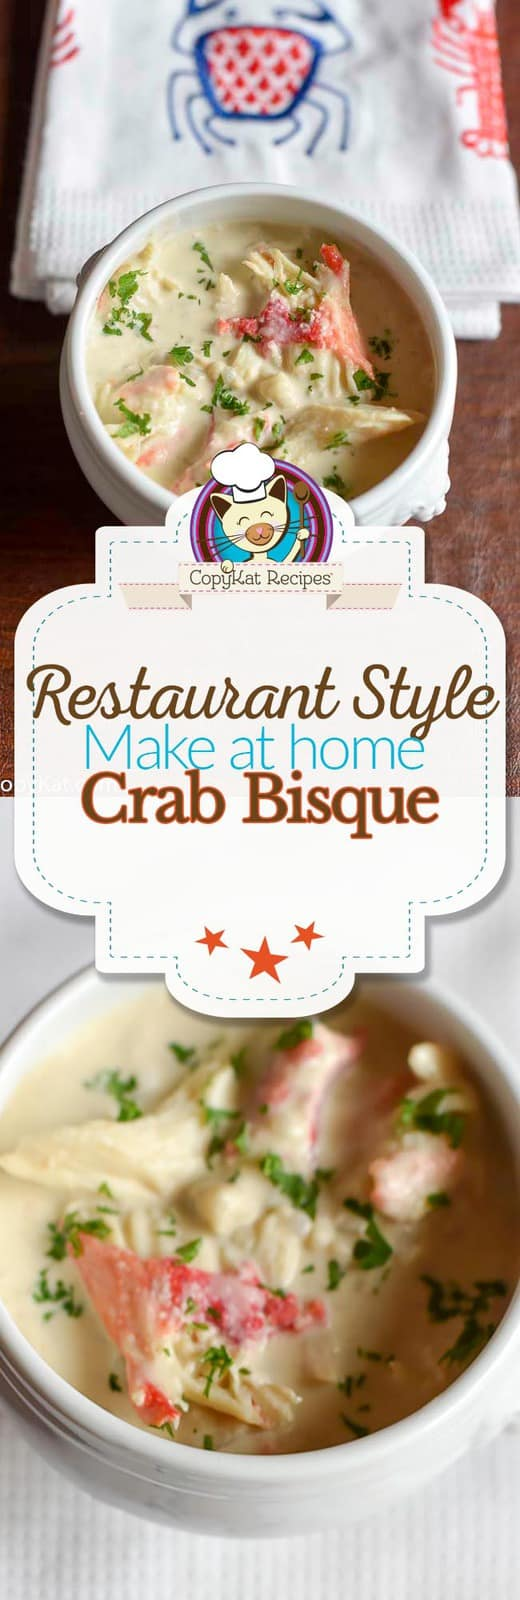 Make restaurant style crab bisque at home, you can have restaurant flavors at home.